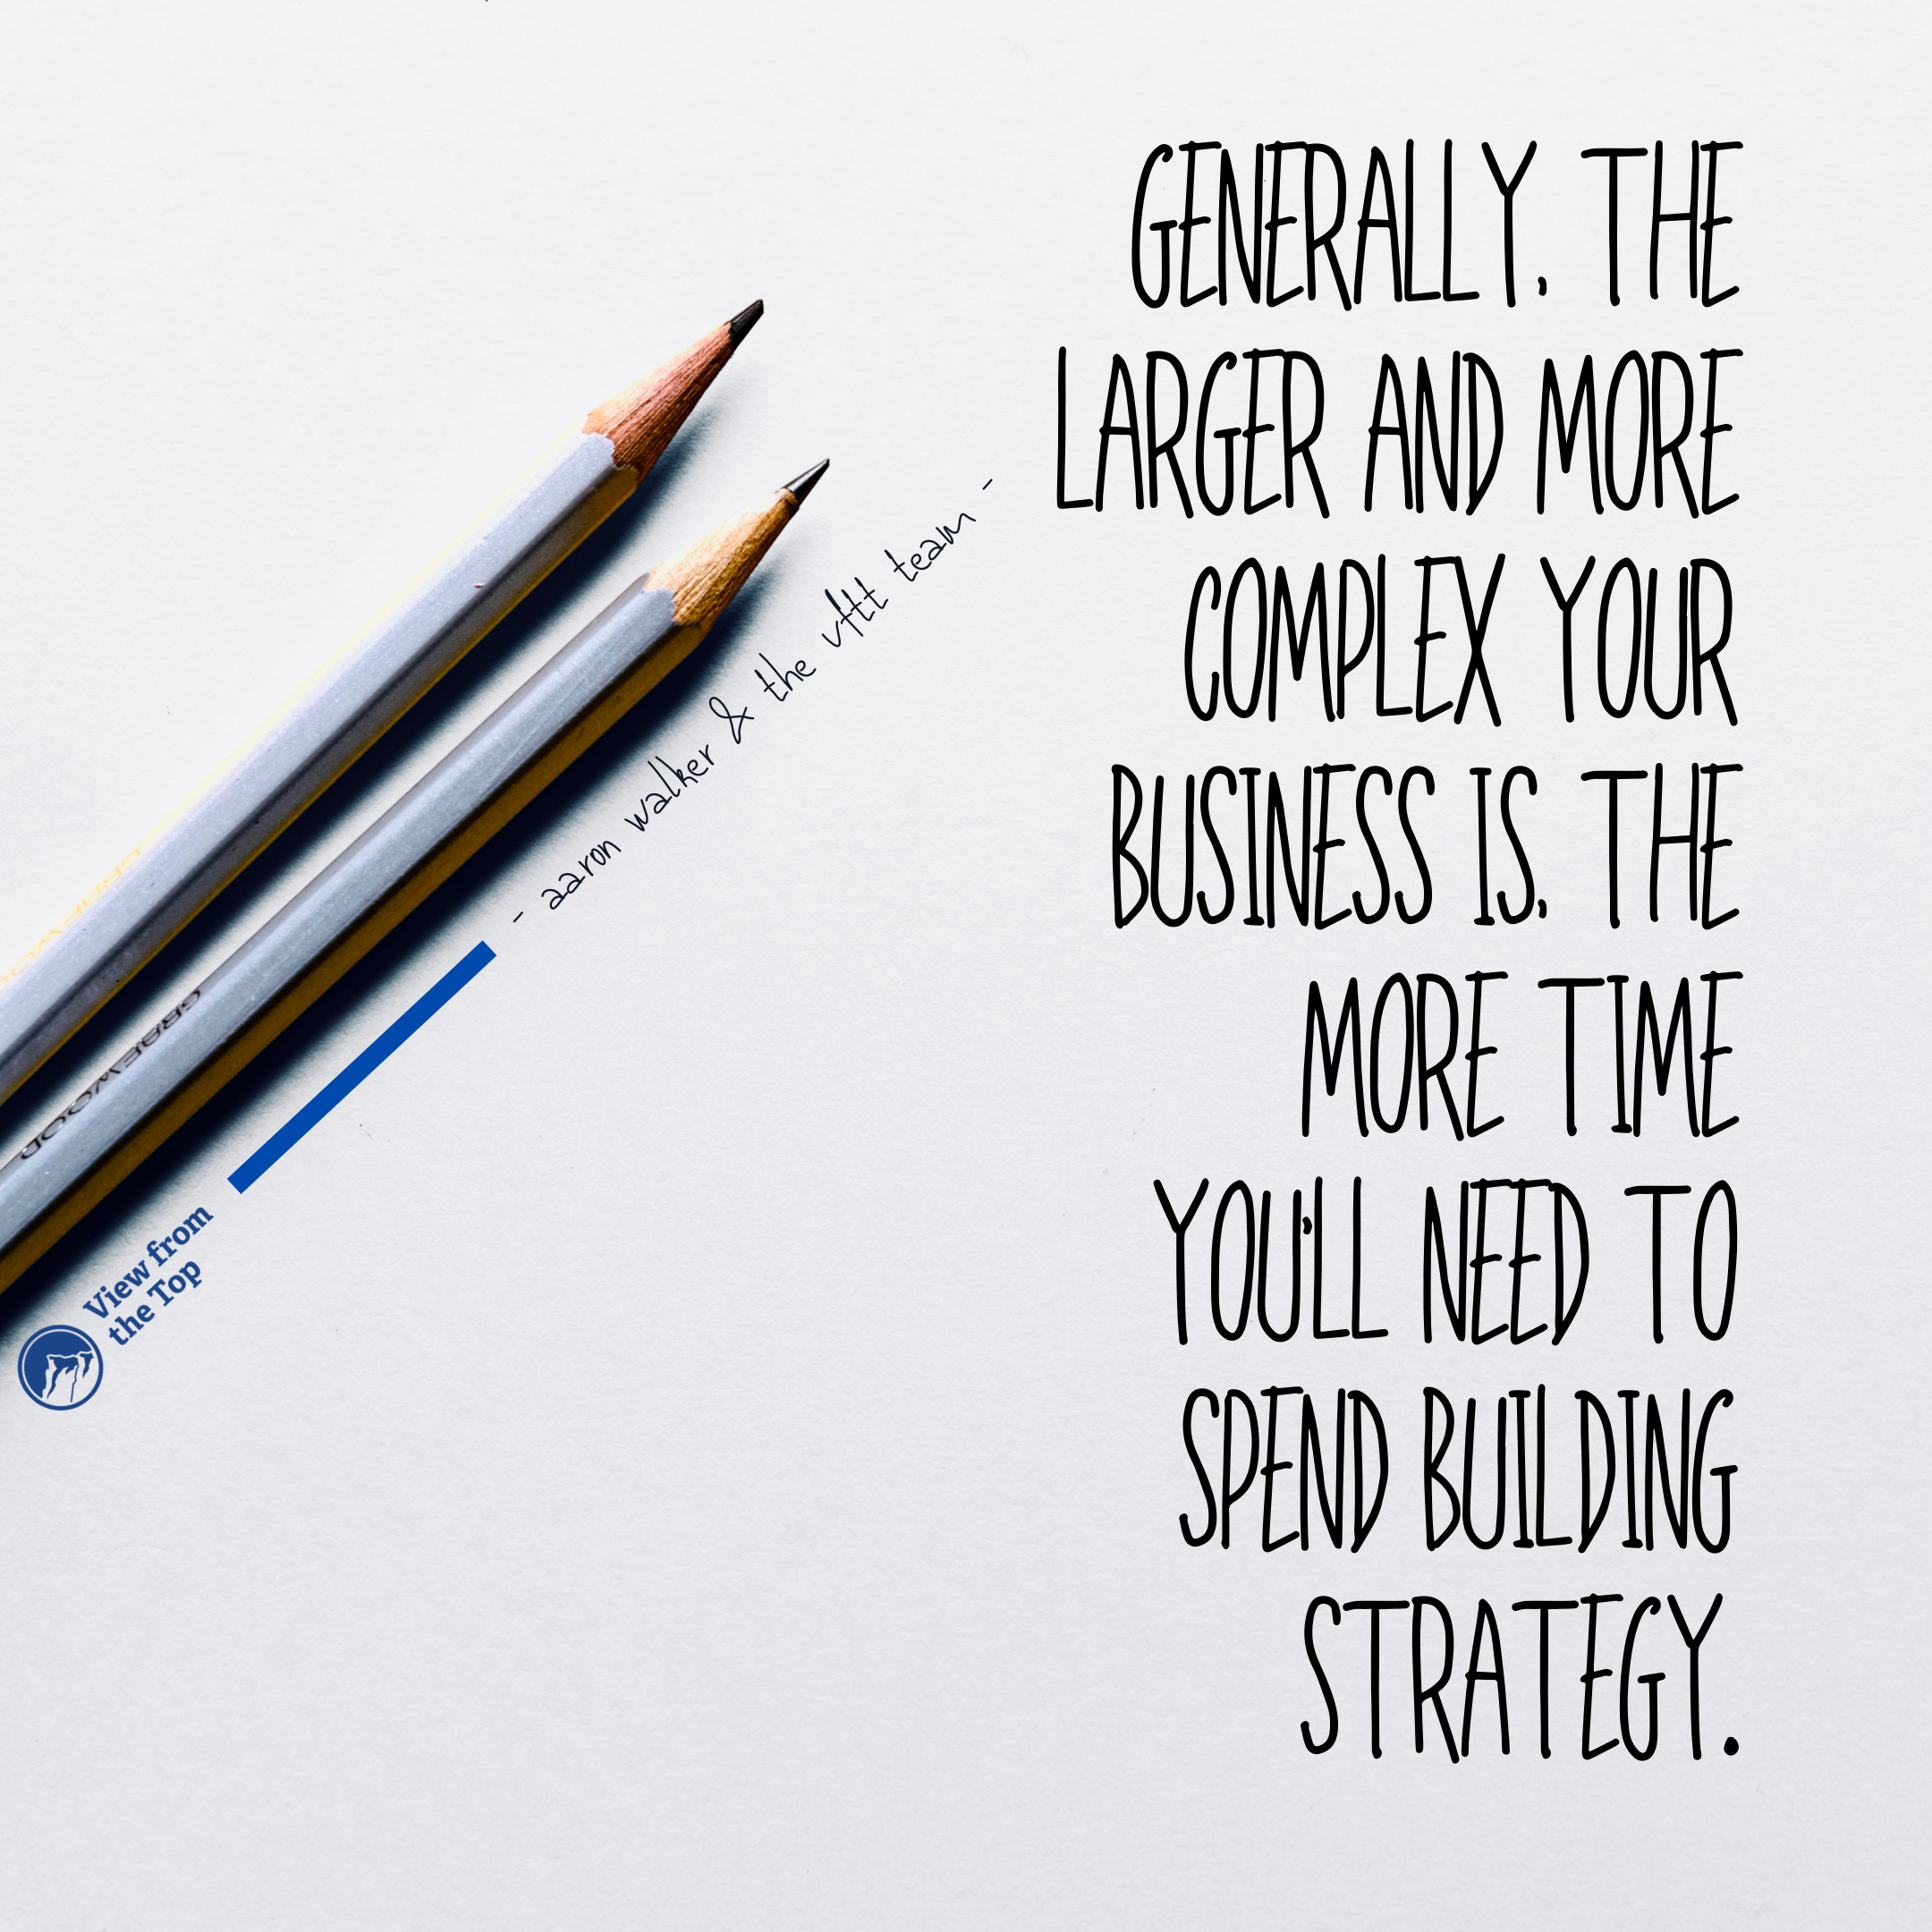 Generally, the larger and more complex your business is, the more time you'll need to spend building strategy. (1)